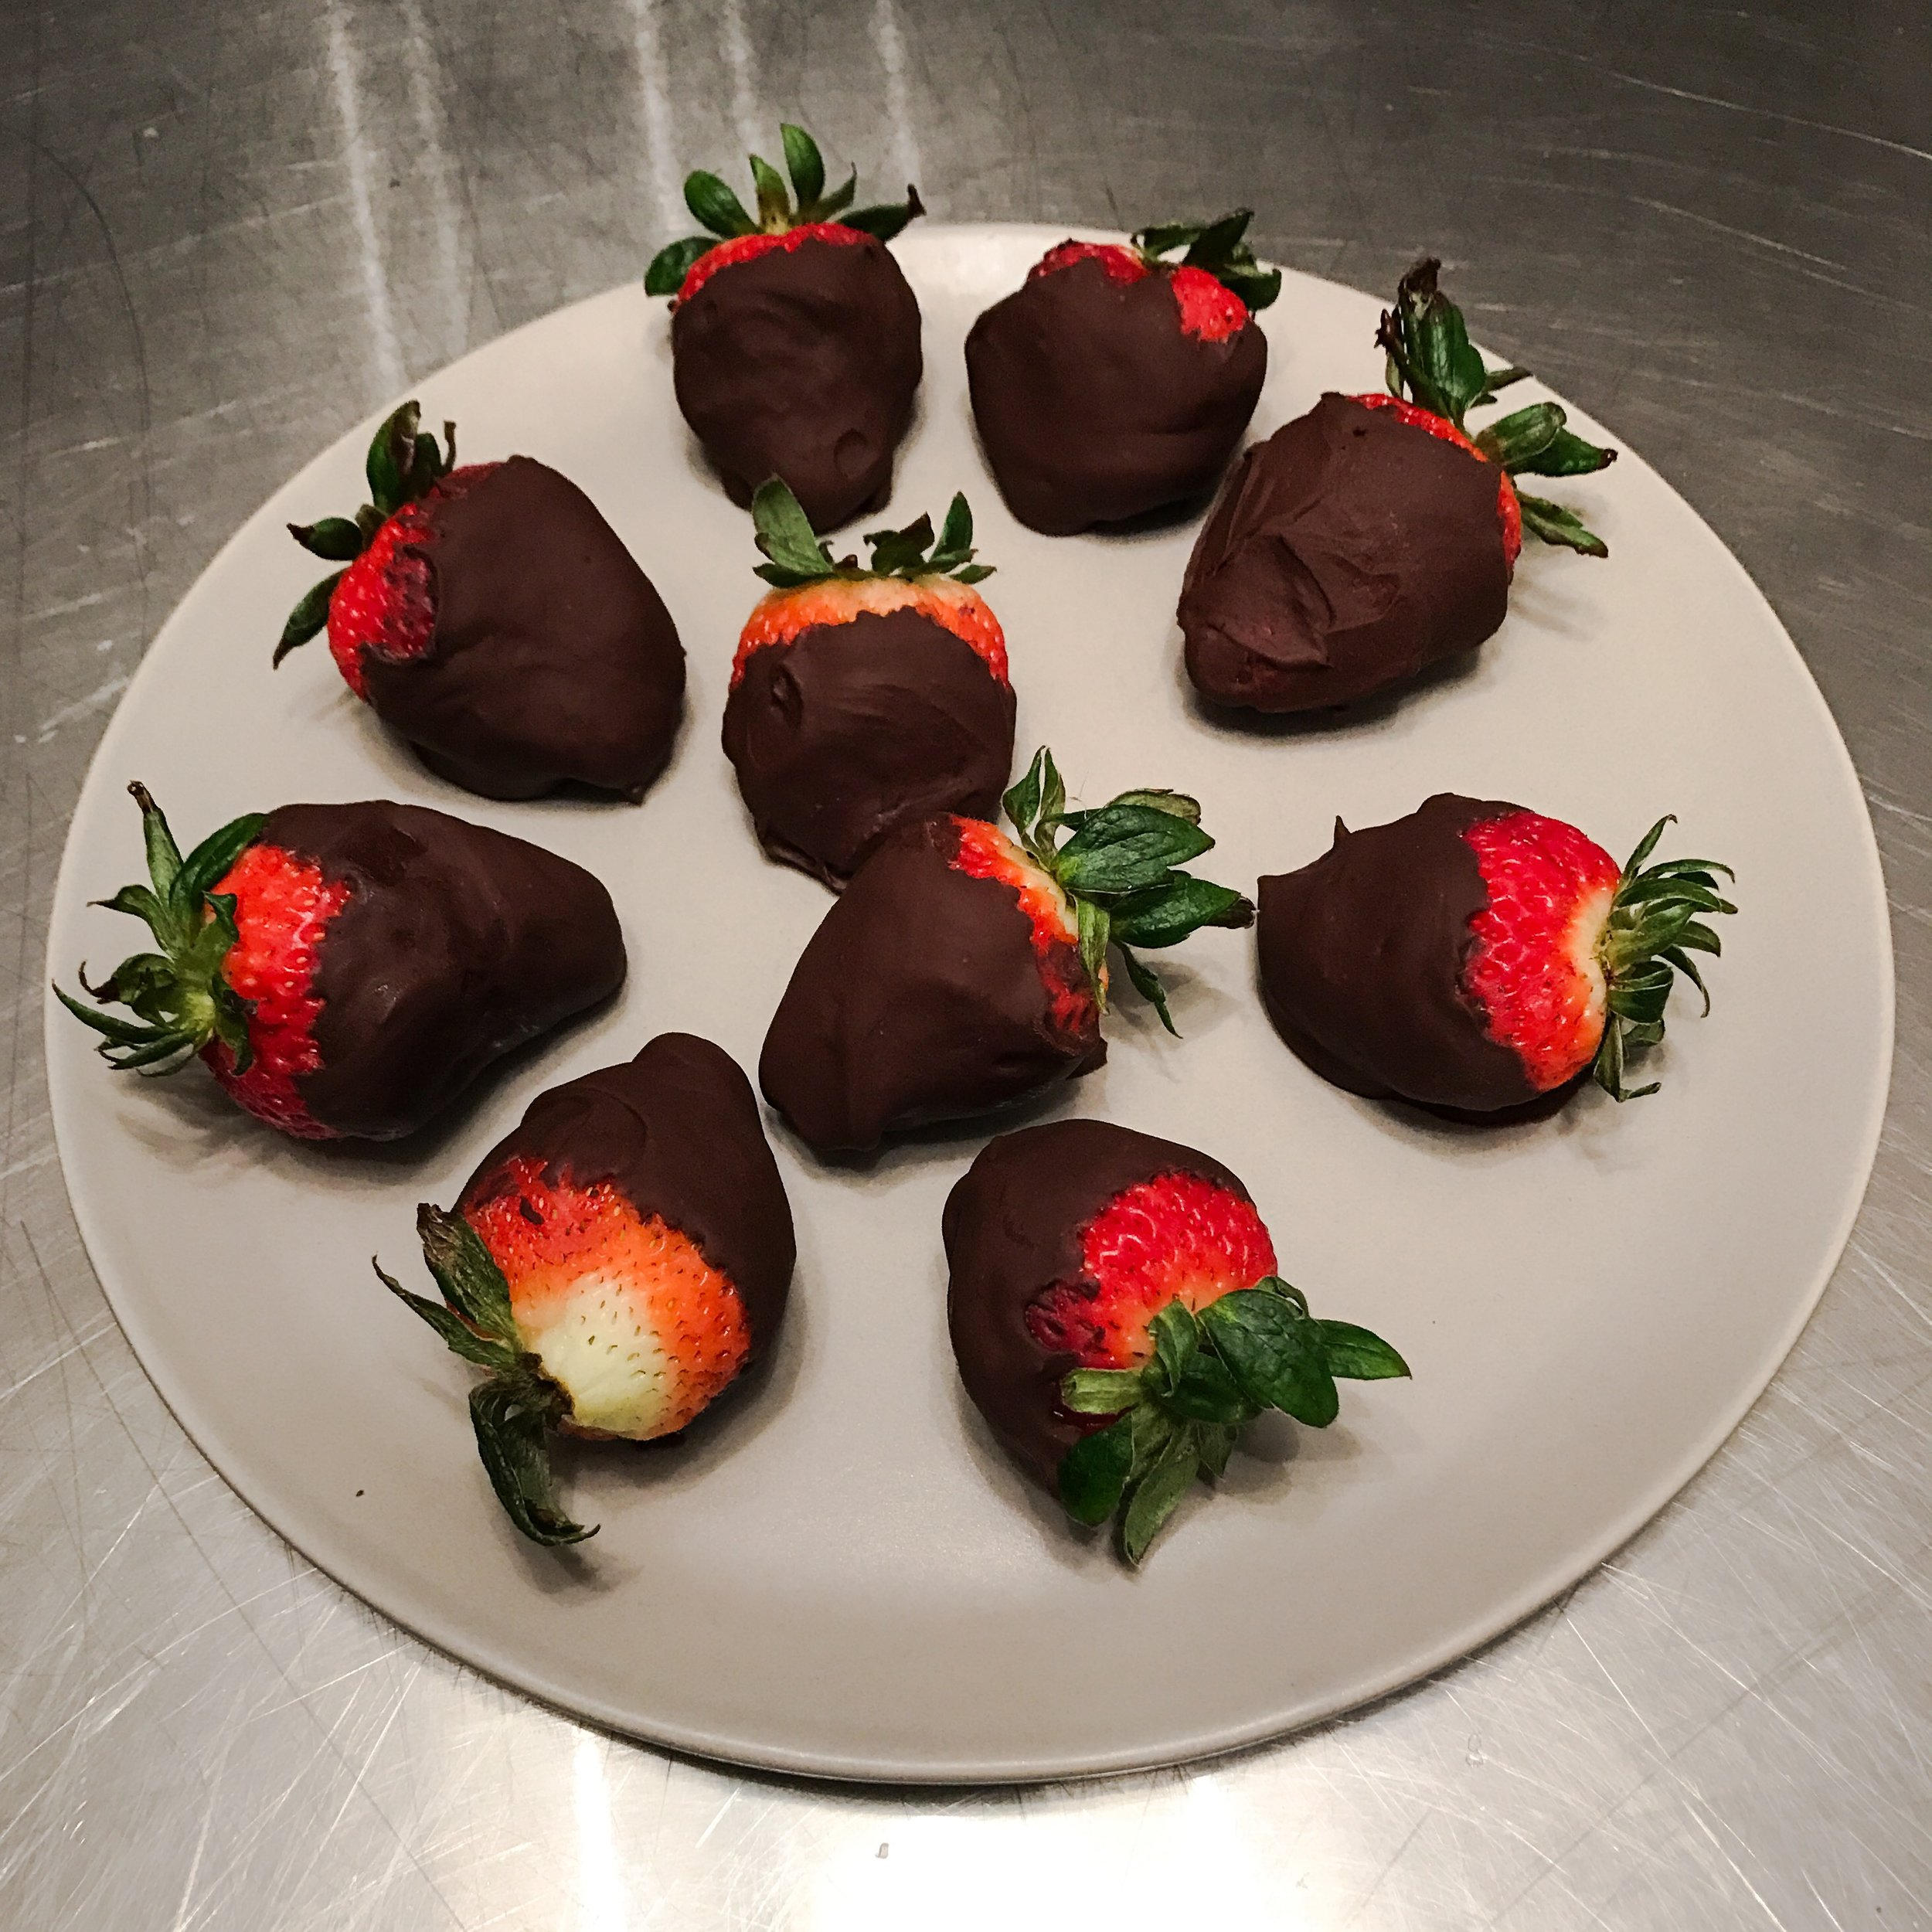 KETO RECIPE: A VALENTINE DINNER FOR TWO, SEARED STEAK WITH BUTTERNUT SQUASH & SWISS CHARD GRATIN AND DARK CHOCOLATE COVERED STRAWBERRIES by Jen Fisch via Keto In The City